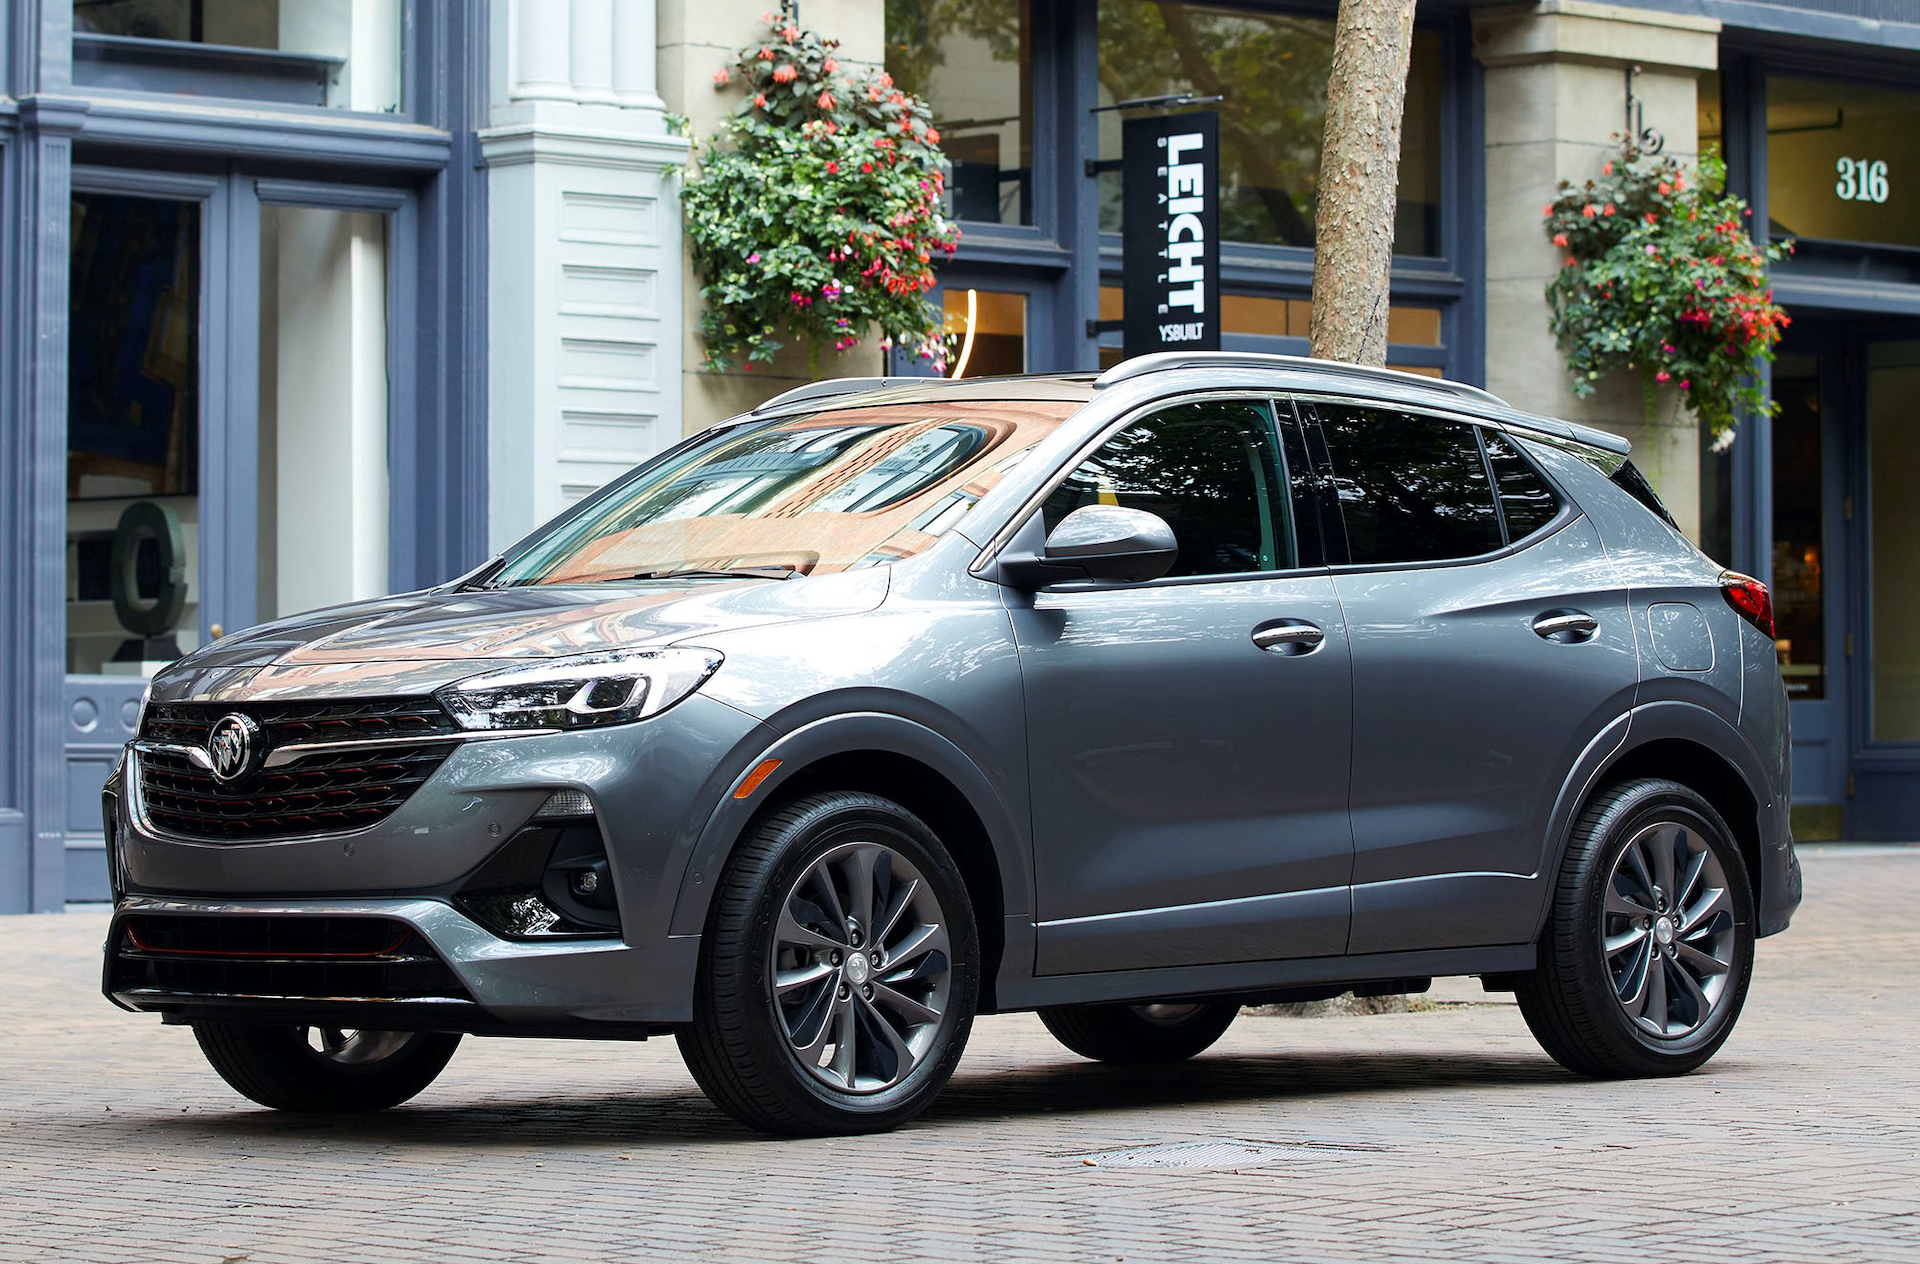 2021 Buick Encore Review, Ratings, Specs, Prices, And Photos New 2021 Buick Encore Release Date, Specifications, Exterior Colors